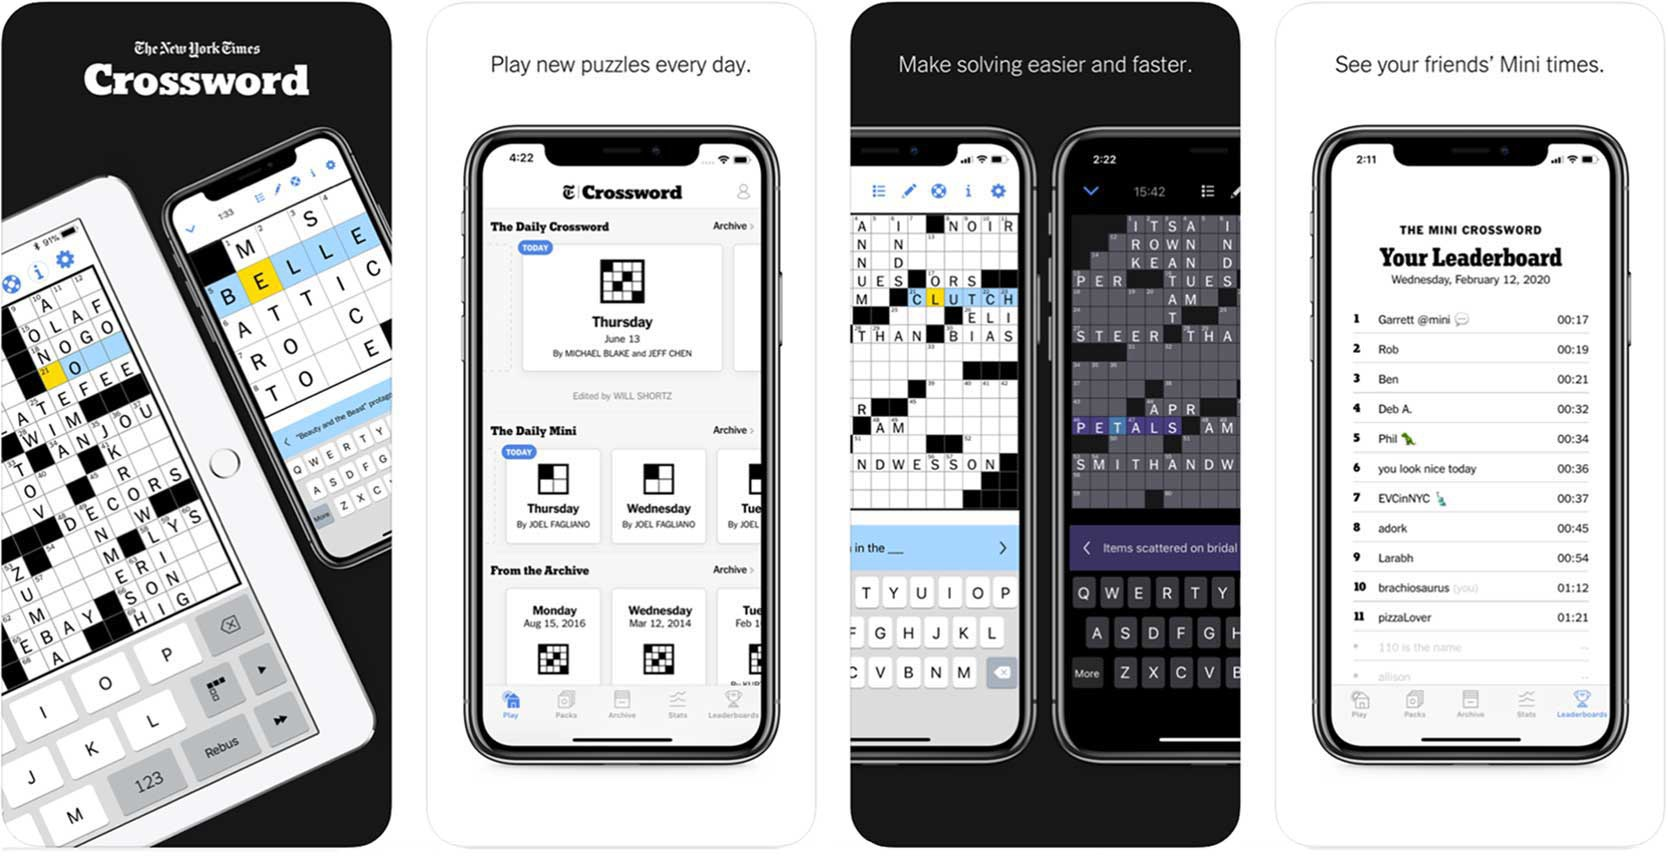 Screenshot of New York Times crossword puzzle game